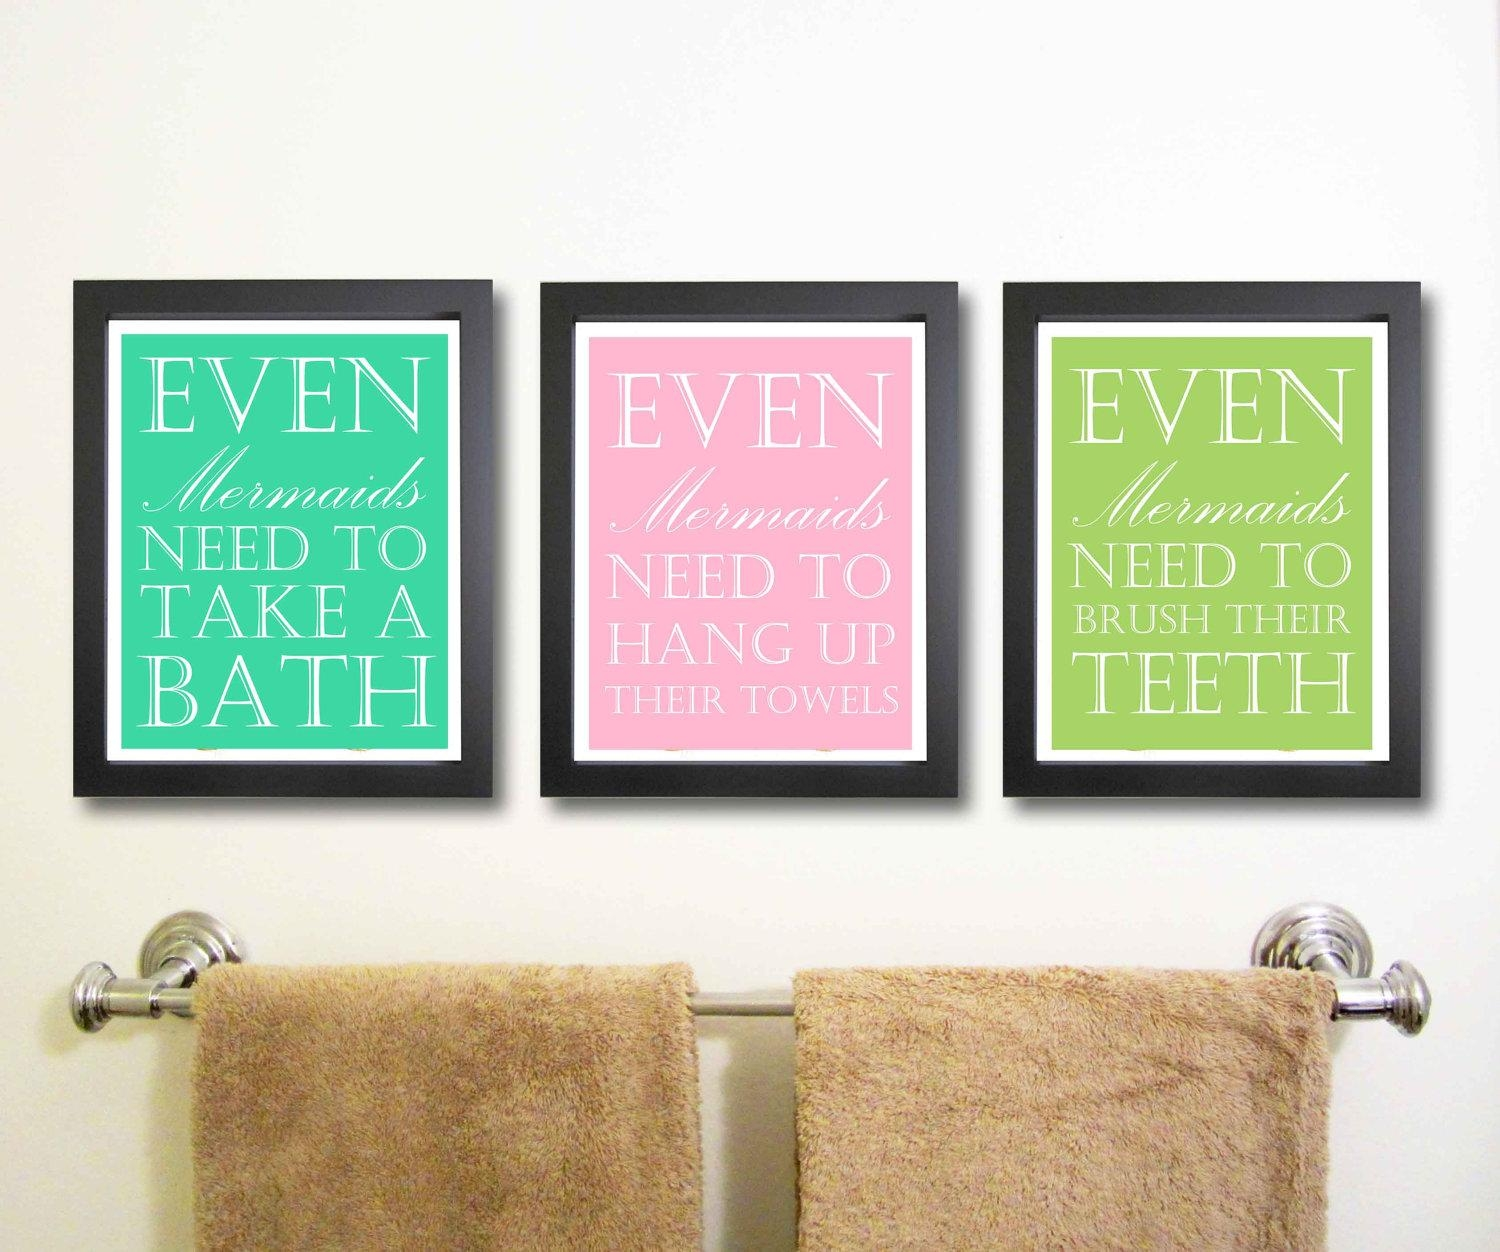 Impressive Bathroom Wall Art With Black Framed Hanging Decoration For Kids Bathroom Wall Art (View 6 of 20)